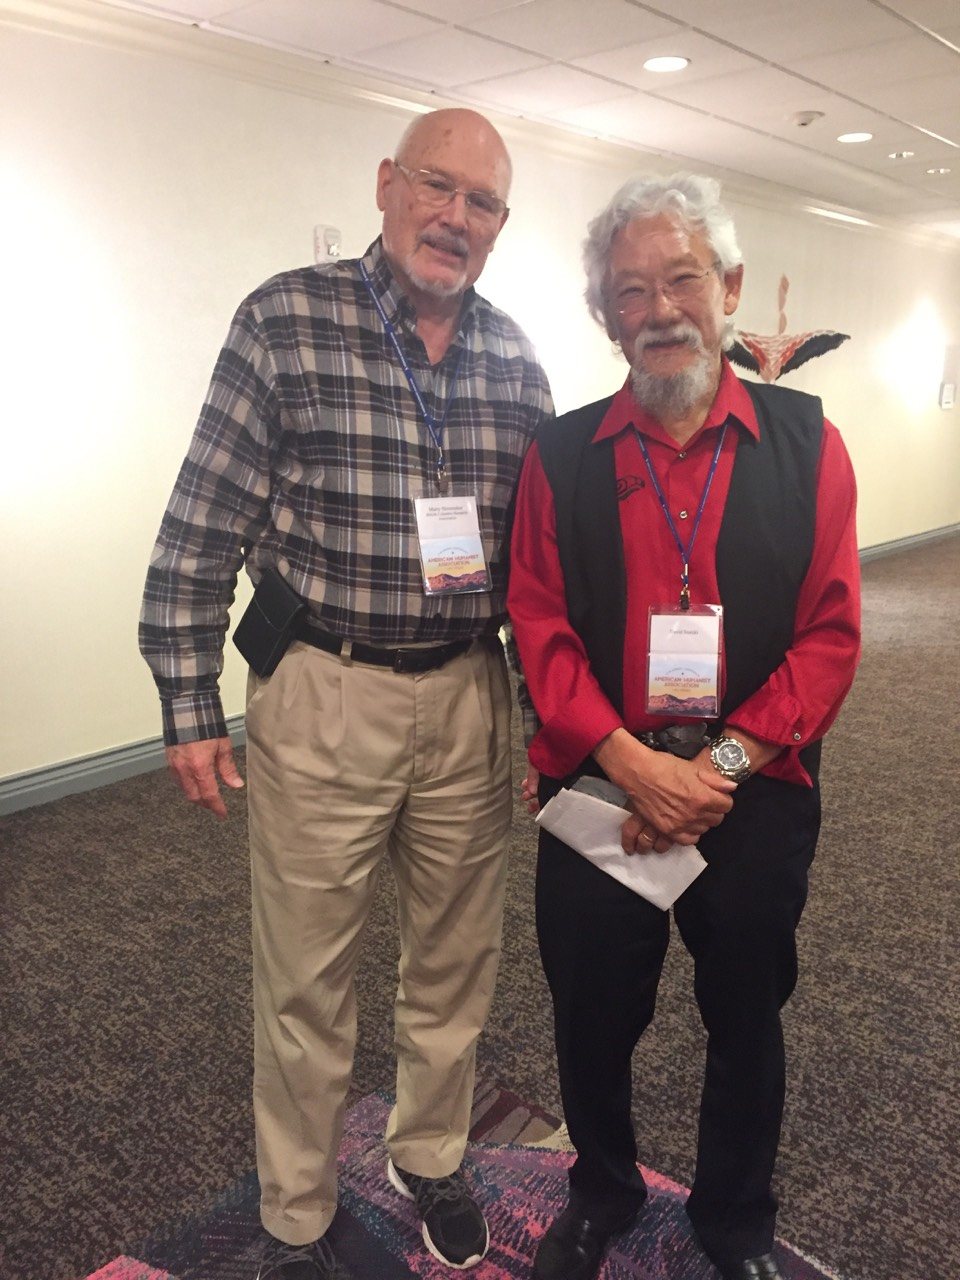 Marty with David Suzuki